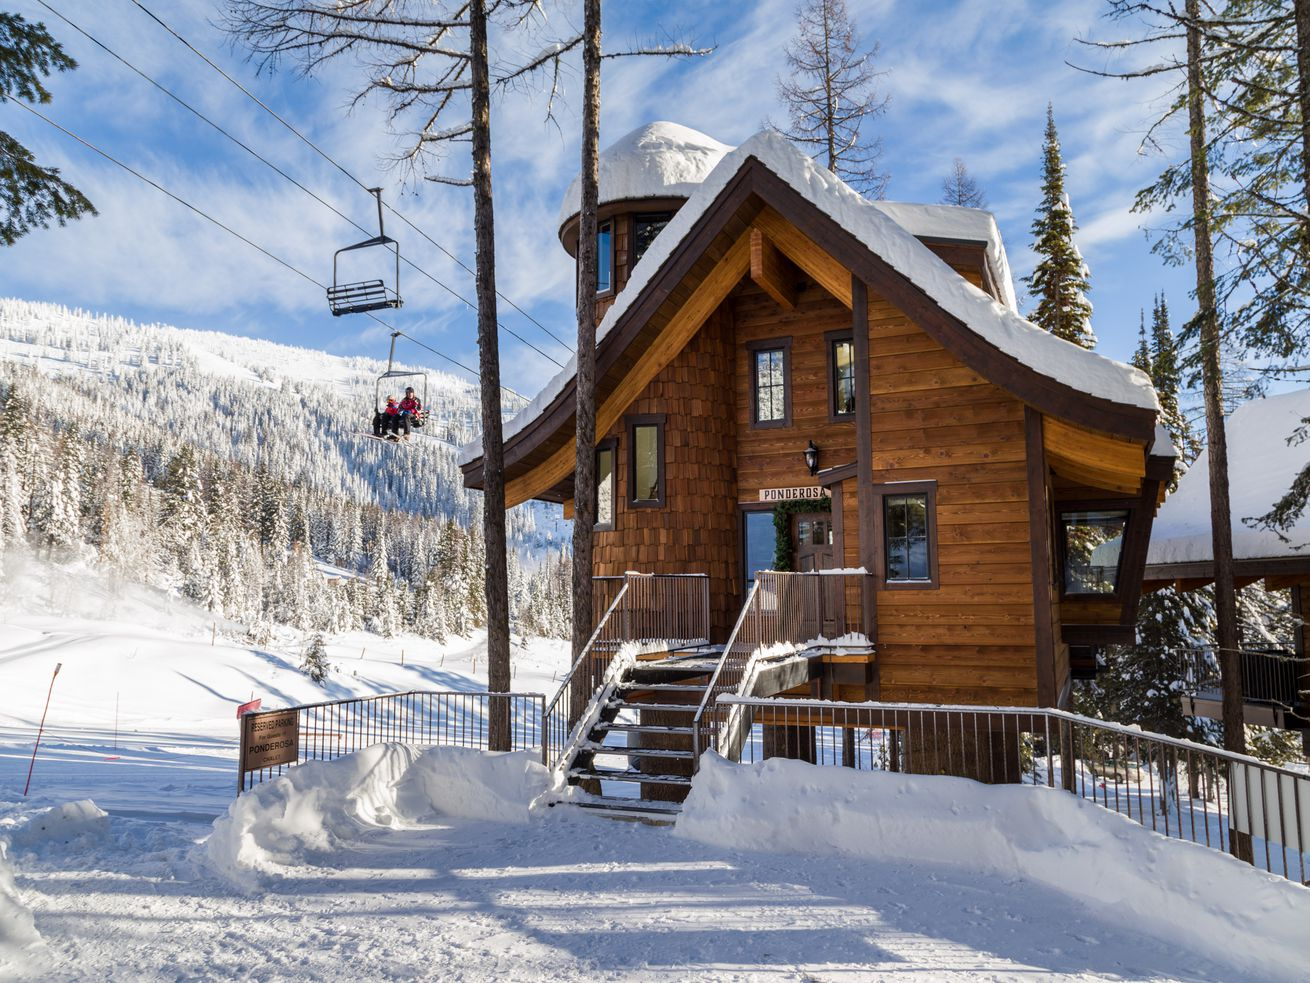 Located slopeside at Montana's Whitefish Mountain Resort, these treehouses offer unique ski-in/ski-out lodging.